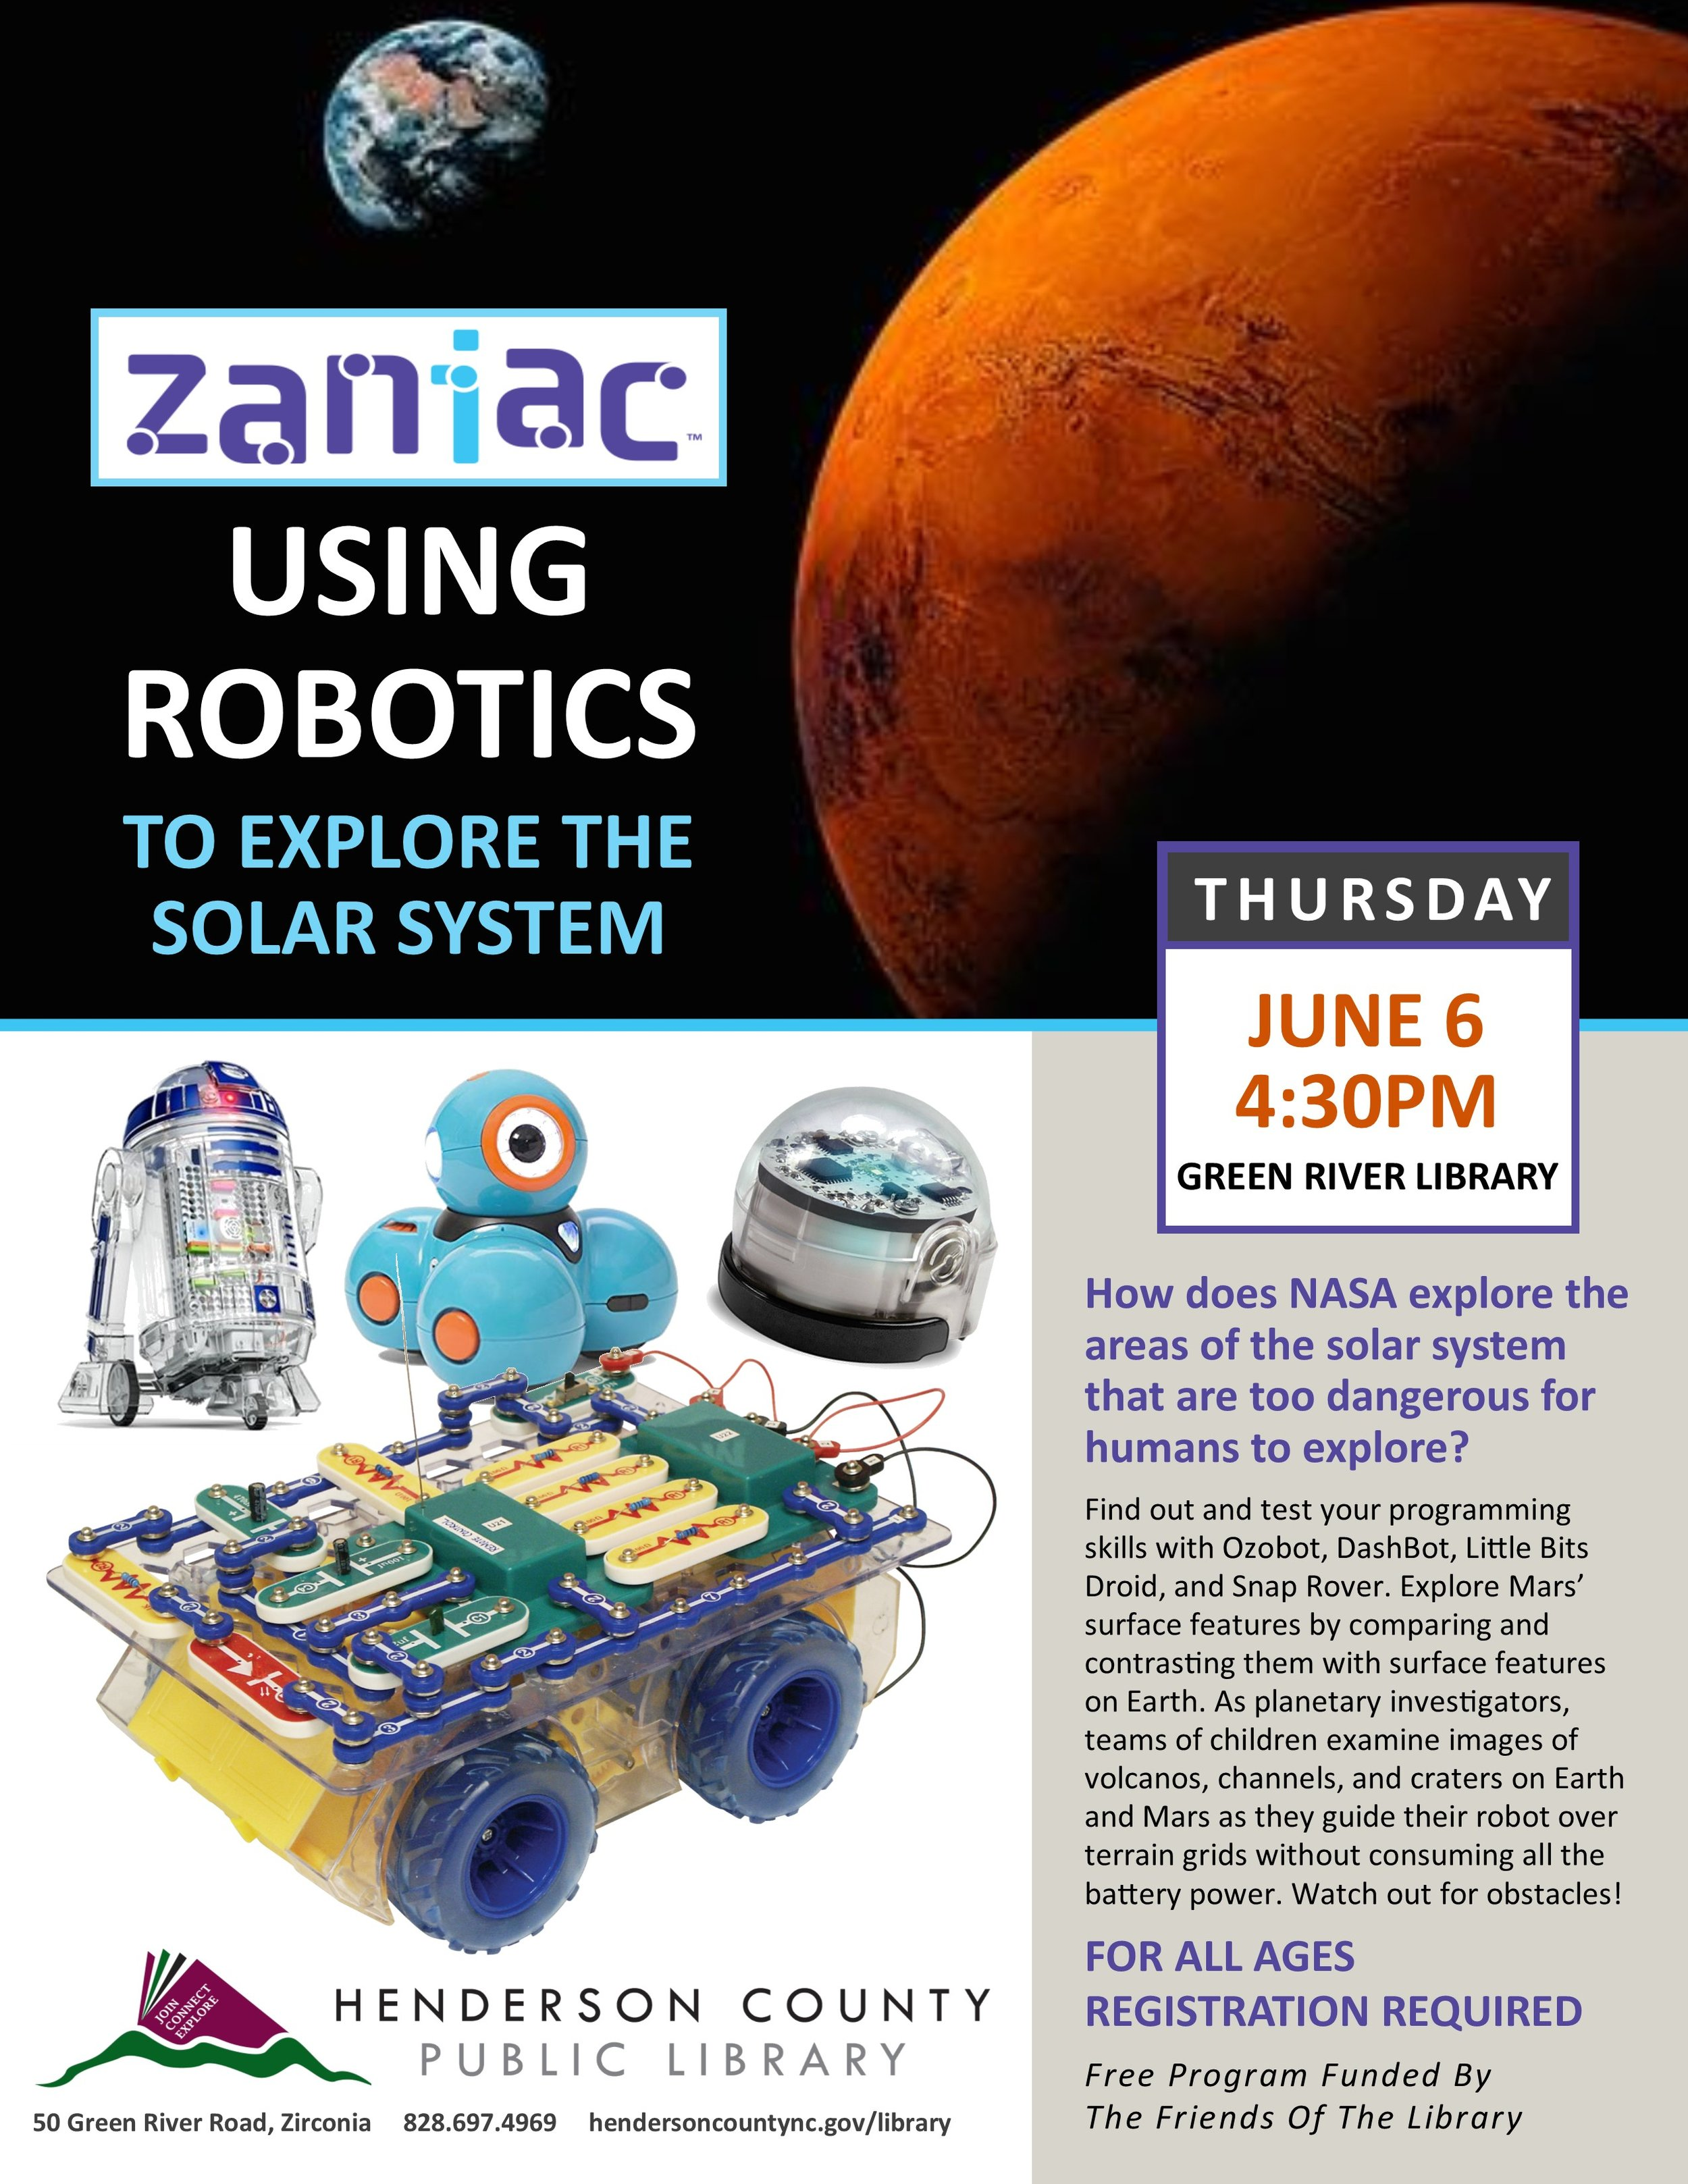 GR- Zaniac Using Robotics to Explore the Solar System.jpg